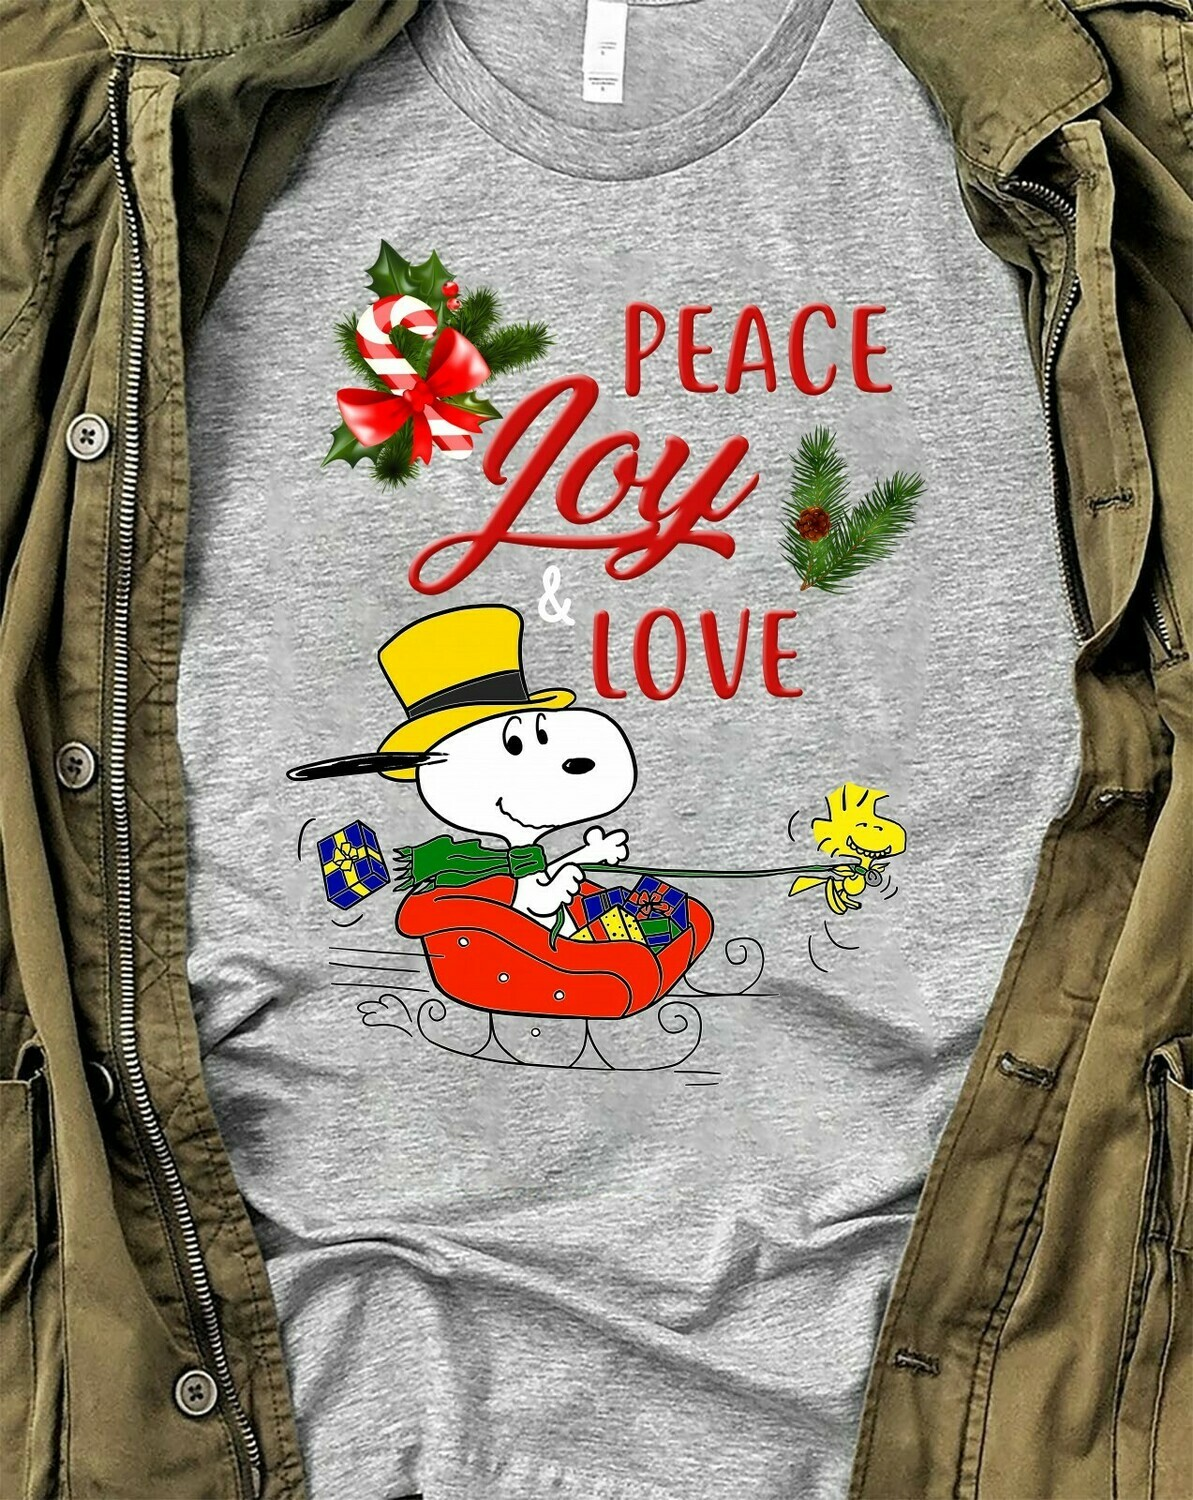 Snoopy Woodstock Charlie Brown Peace Joy Love Friends Funny Christmas Snoopy Kind Merry Christmas 2019 Shirt Long Sleeve Sweatshirt Hoodie Jolly Family Gifts